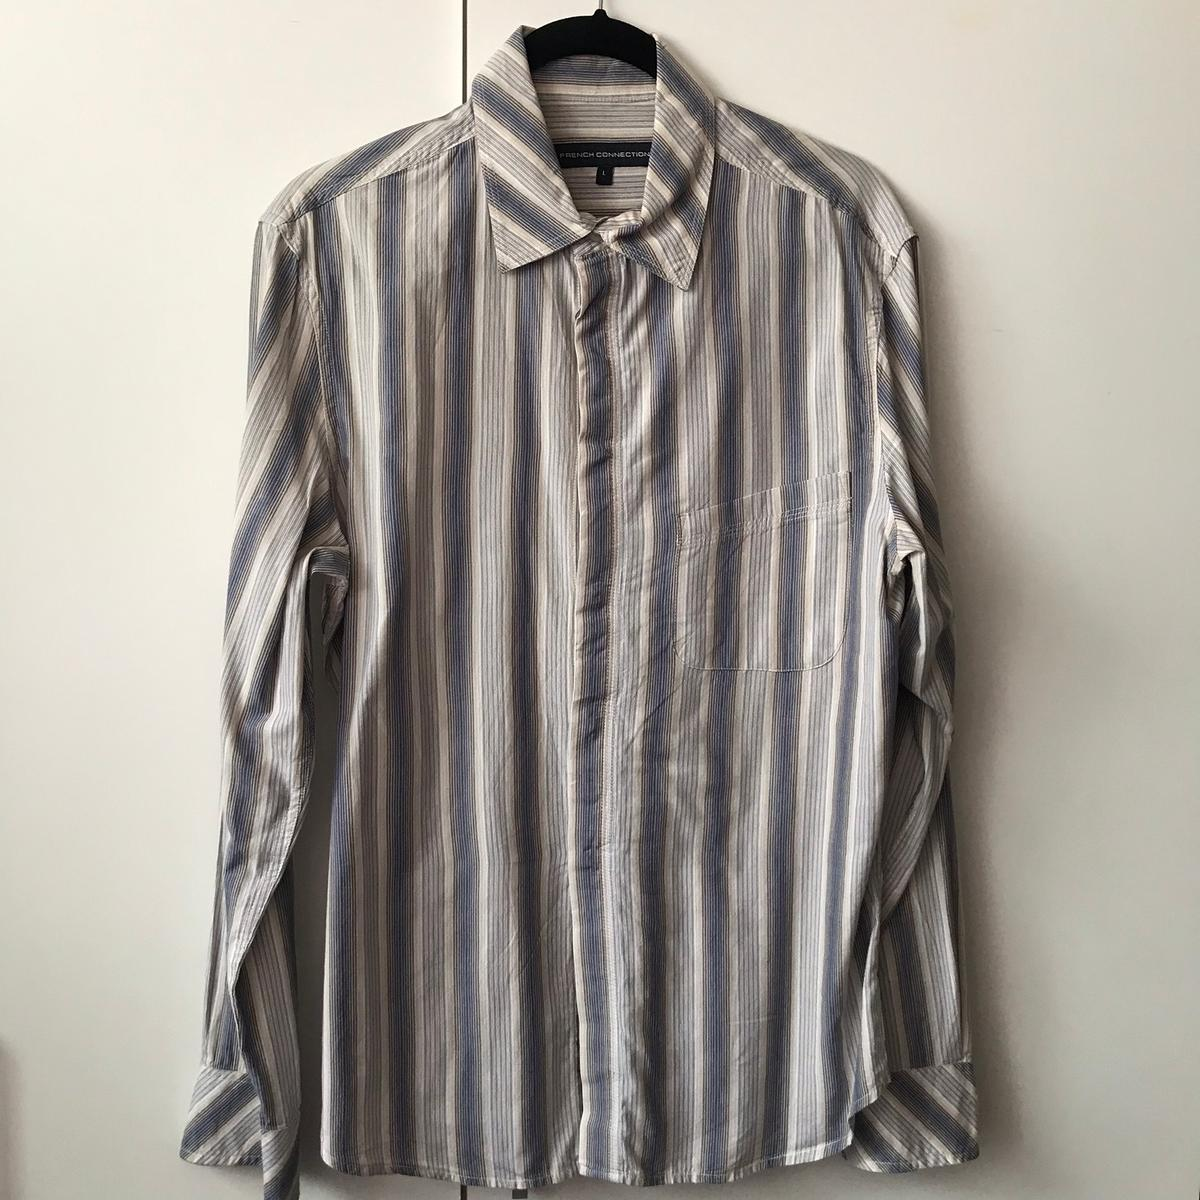 Stunning French Connection Causal Summer Shirt Brand new Size L Mixture of lovely colours, please look at the last picture for exact colour